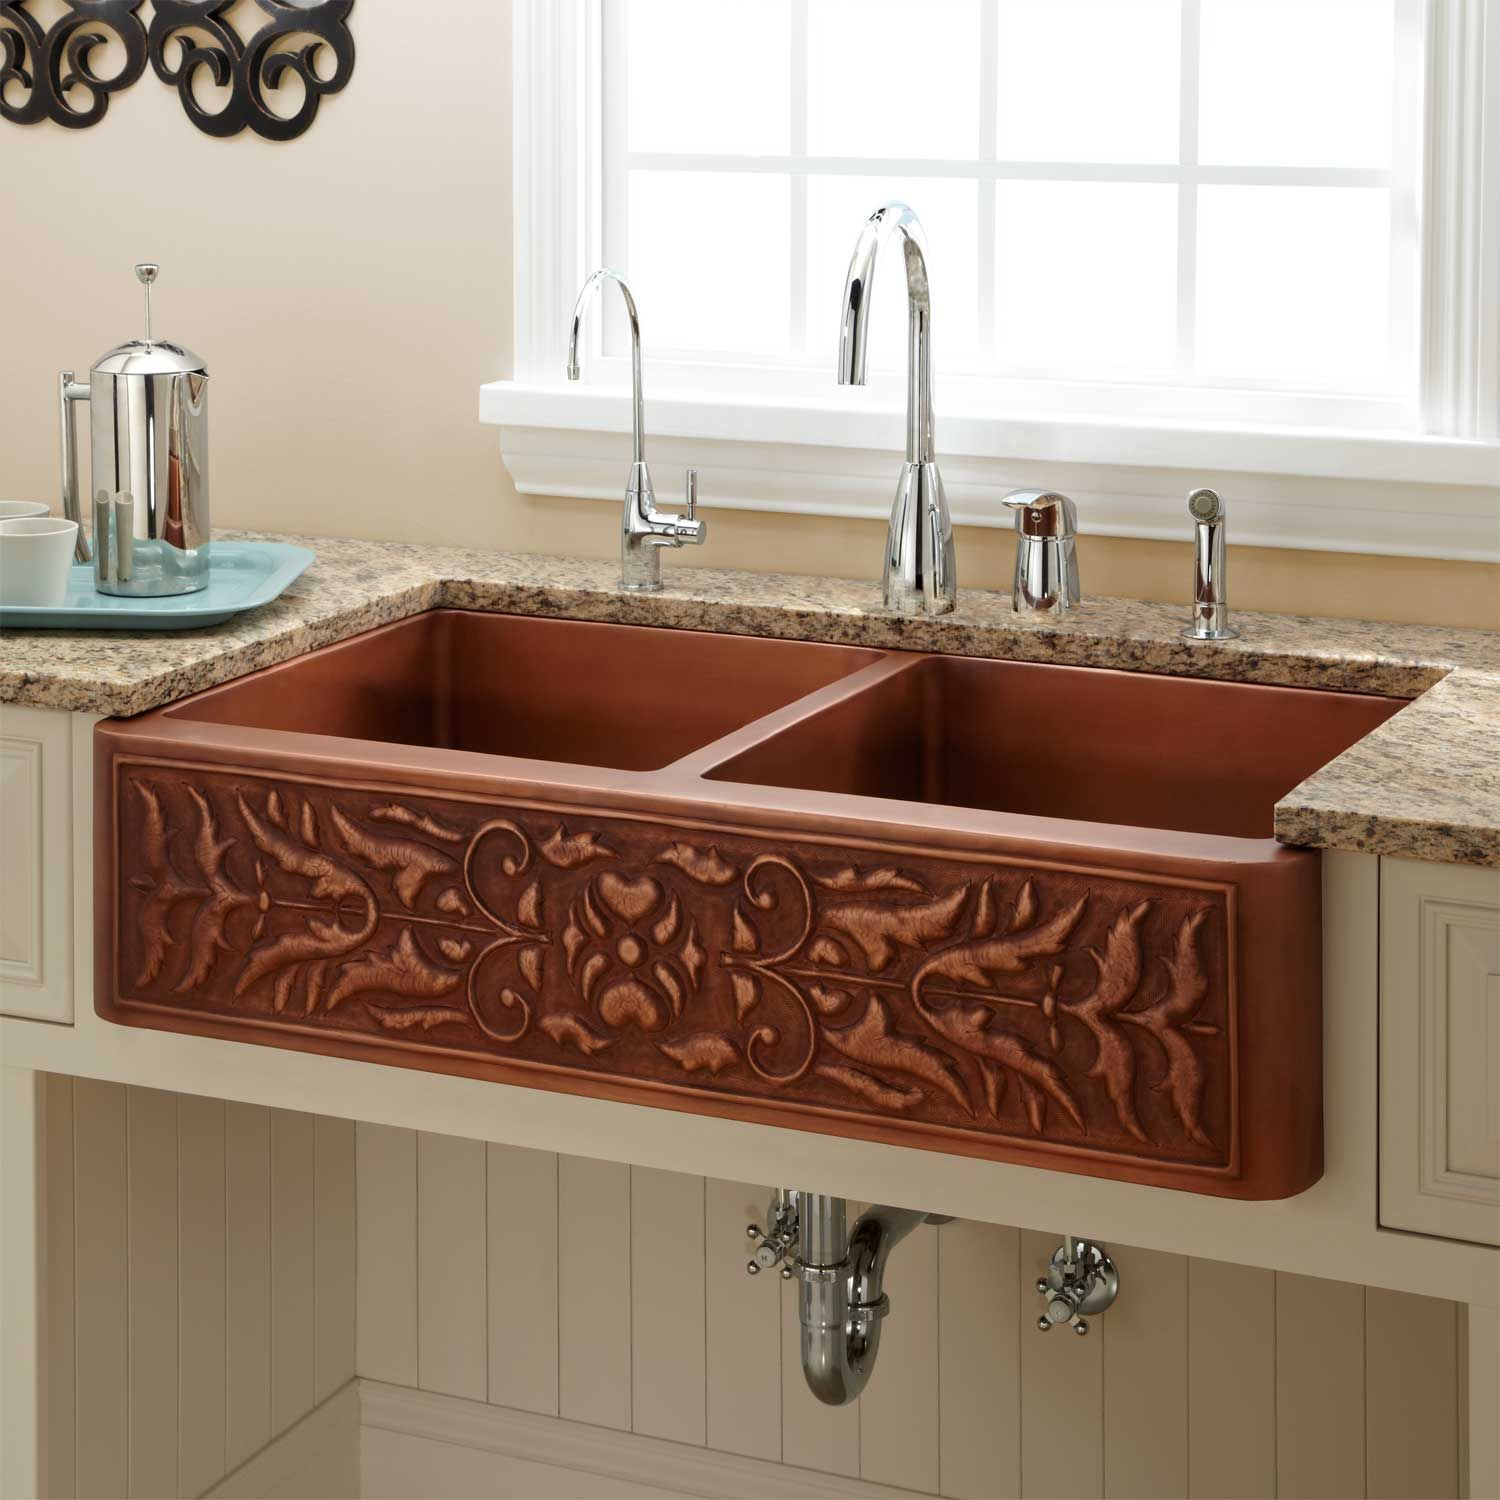 42 Fiona 60 40 Offset Double Bowl Hammered Copper Farmhouse Sink